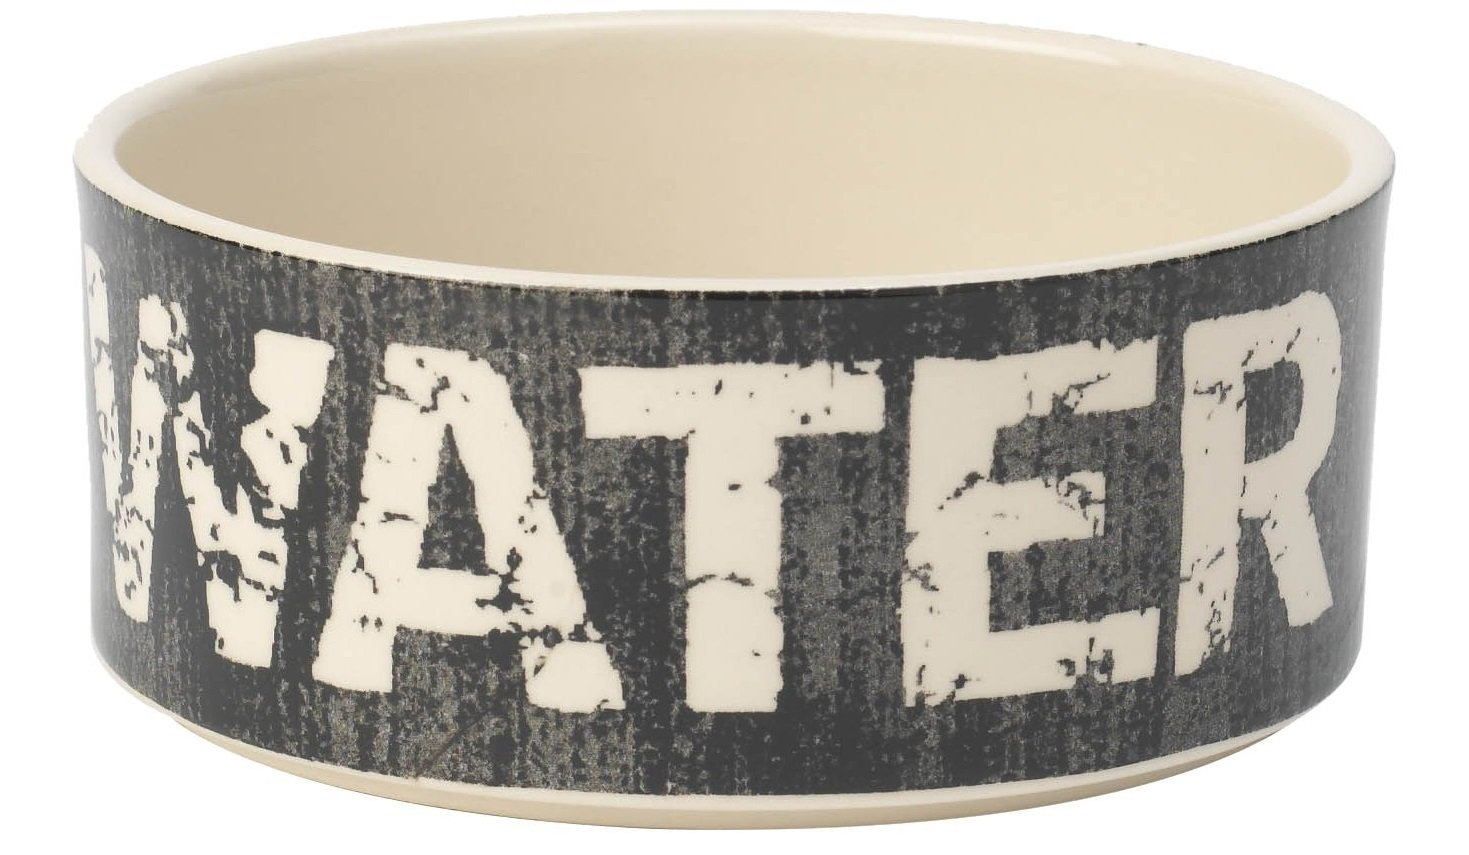 Water Vintage Pet Bowl | Animals Zone